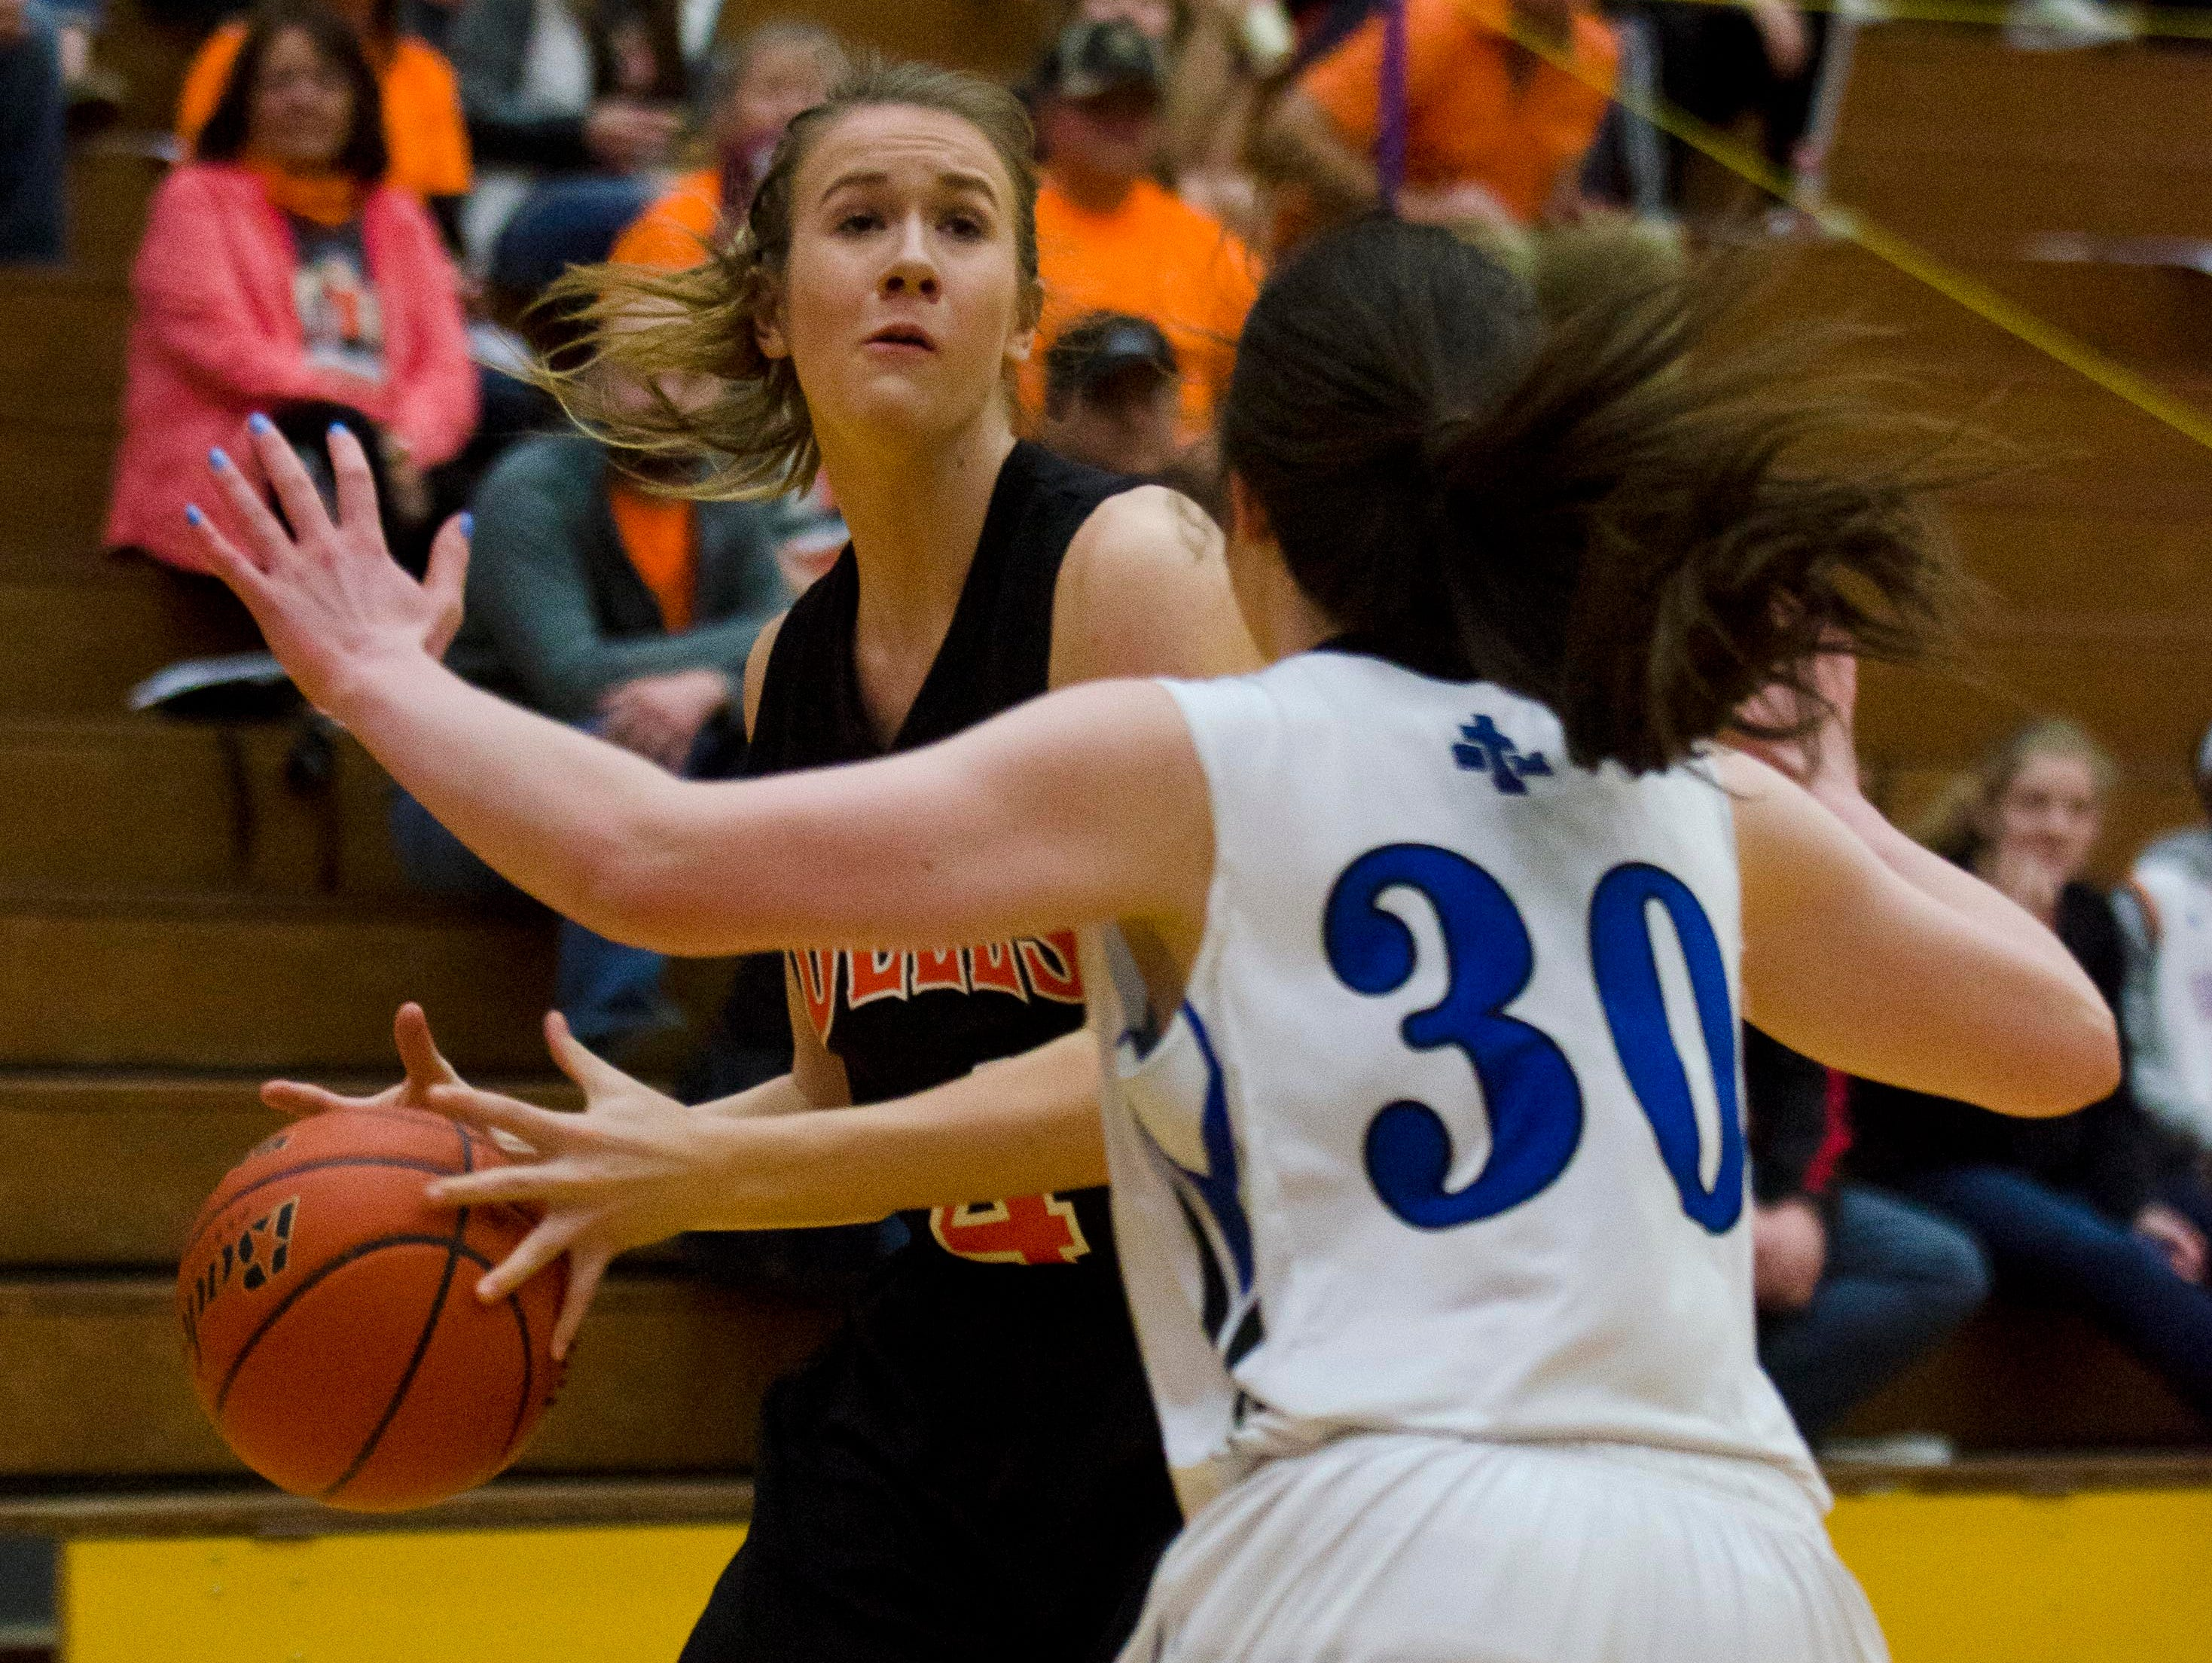 Aspen Hansen of Dell Rapids is defended by St. Thomas More's Shannon Duffy Thursday, March 10, in the Class A state quarterfinals at Watertown Civic Arena. Micah Bader/Dell Rapids Tribune